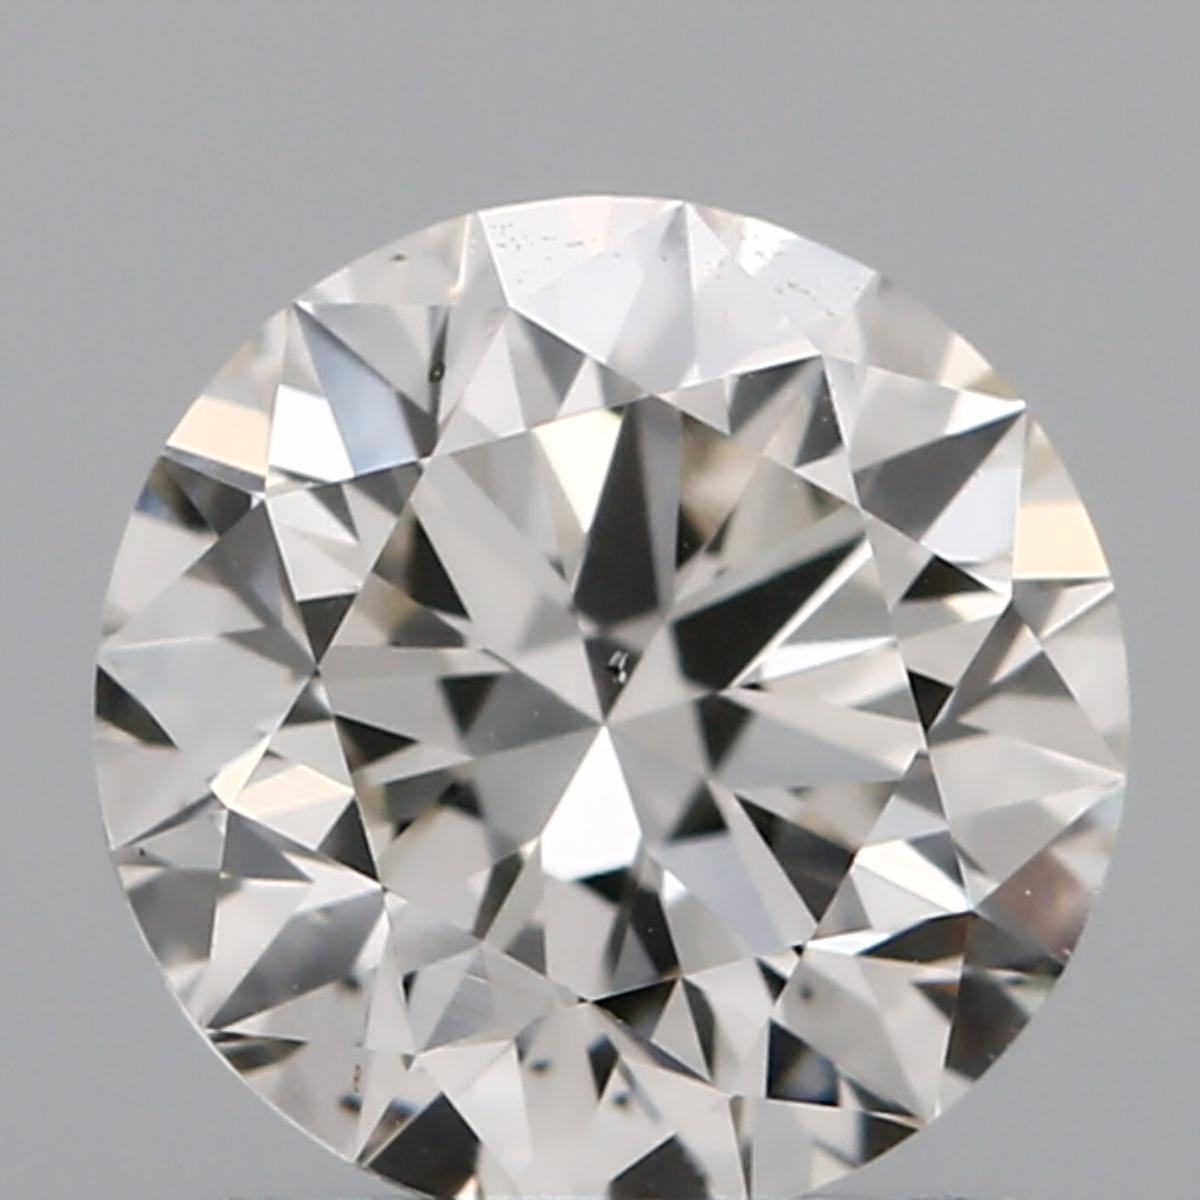 m loose ideal diamonds make gia super certified diamond clarity sku carat color round